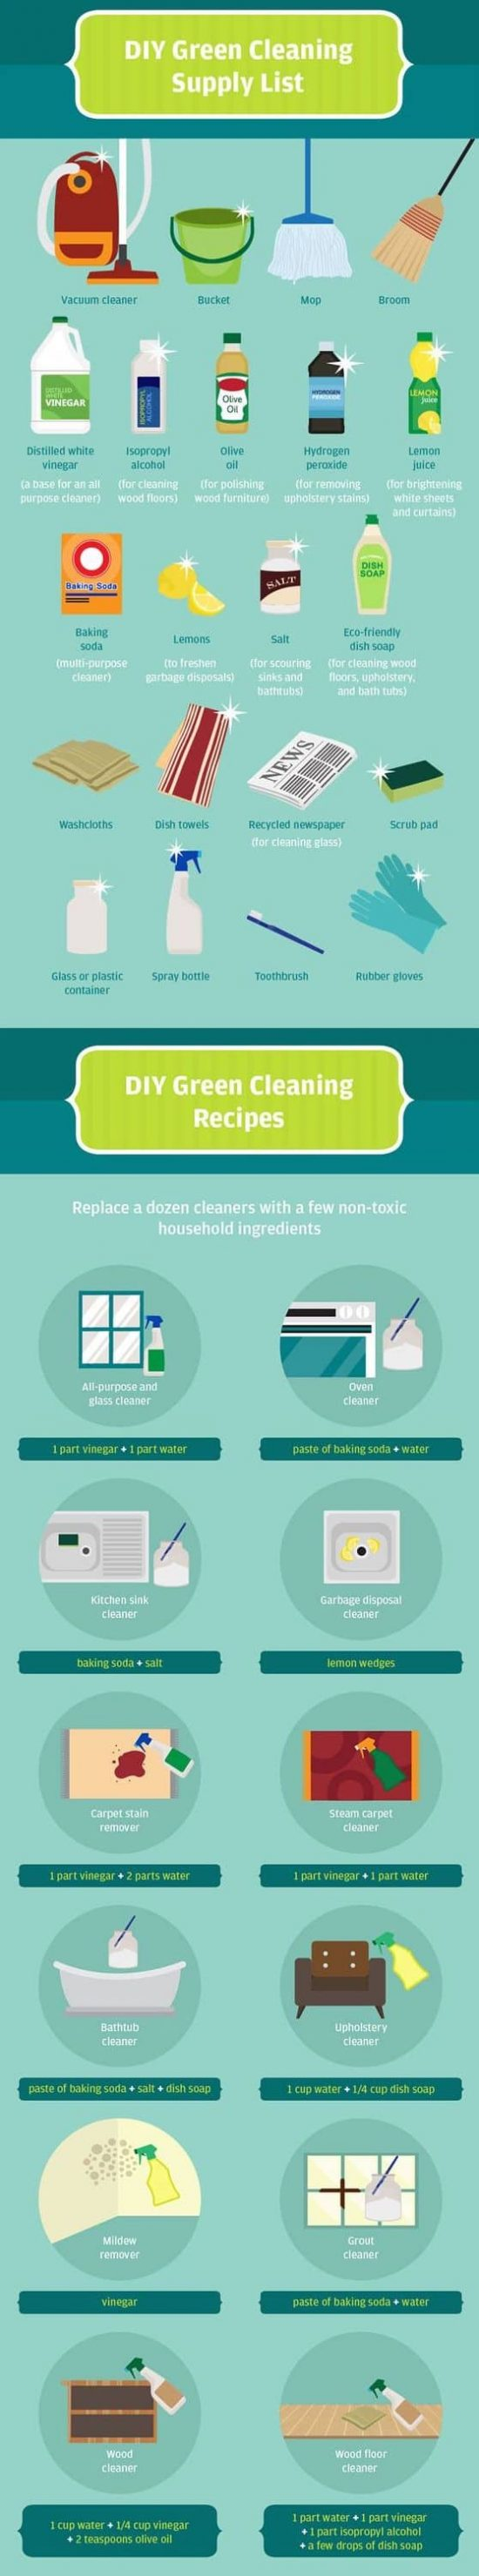 Green Kitchen Cleaning Recipes 3